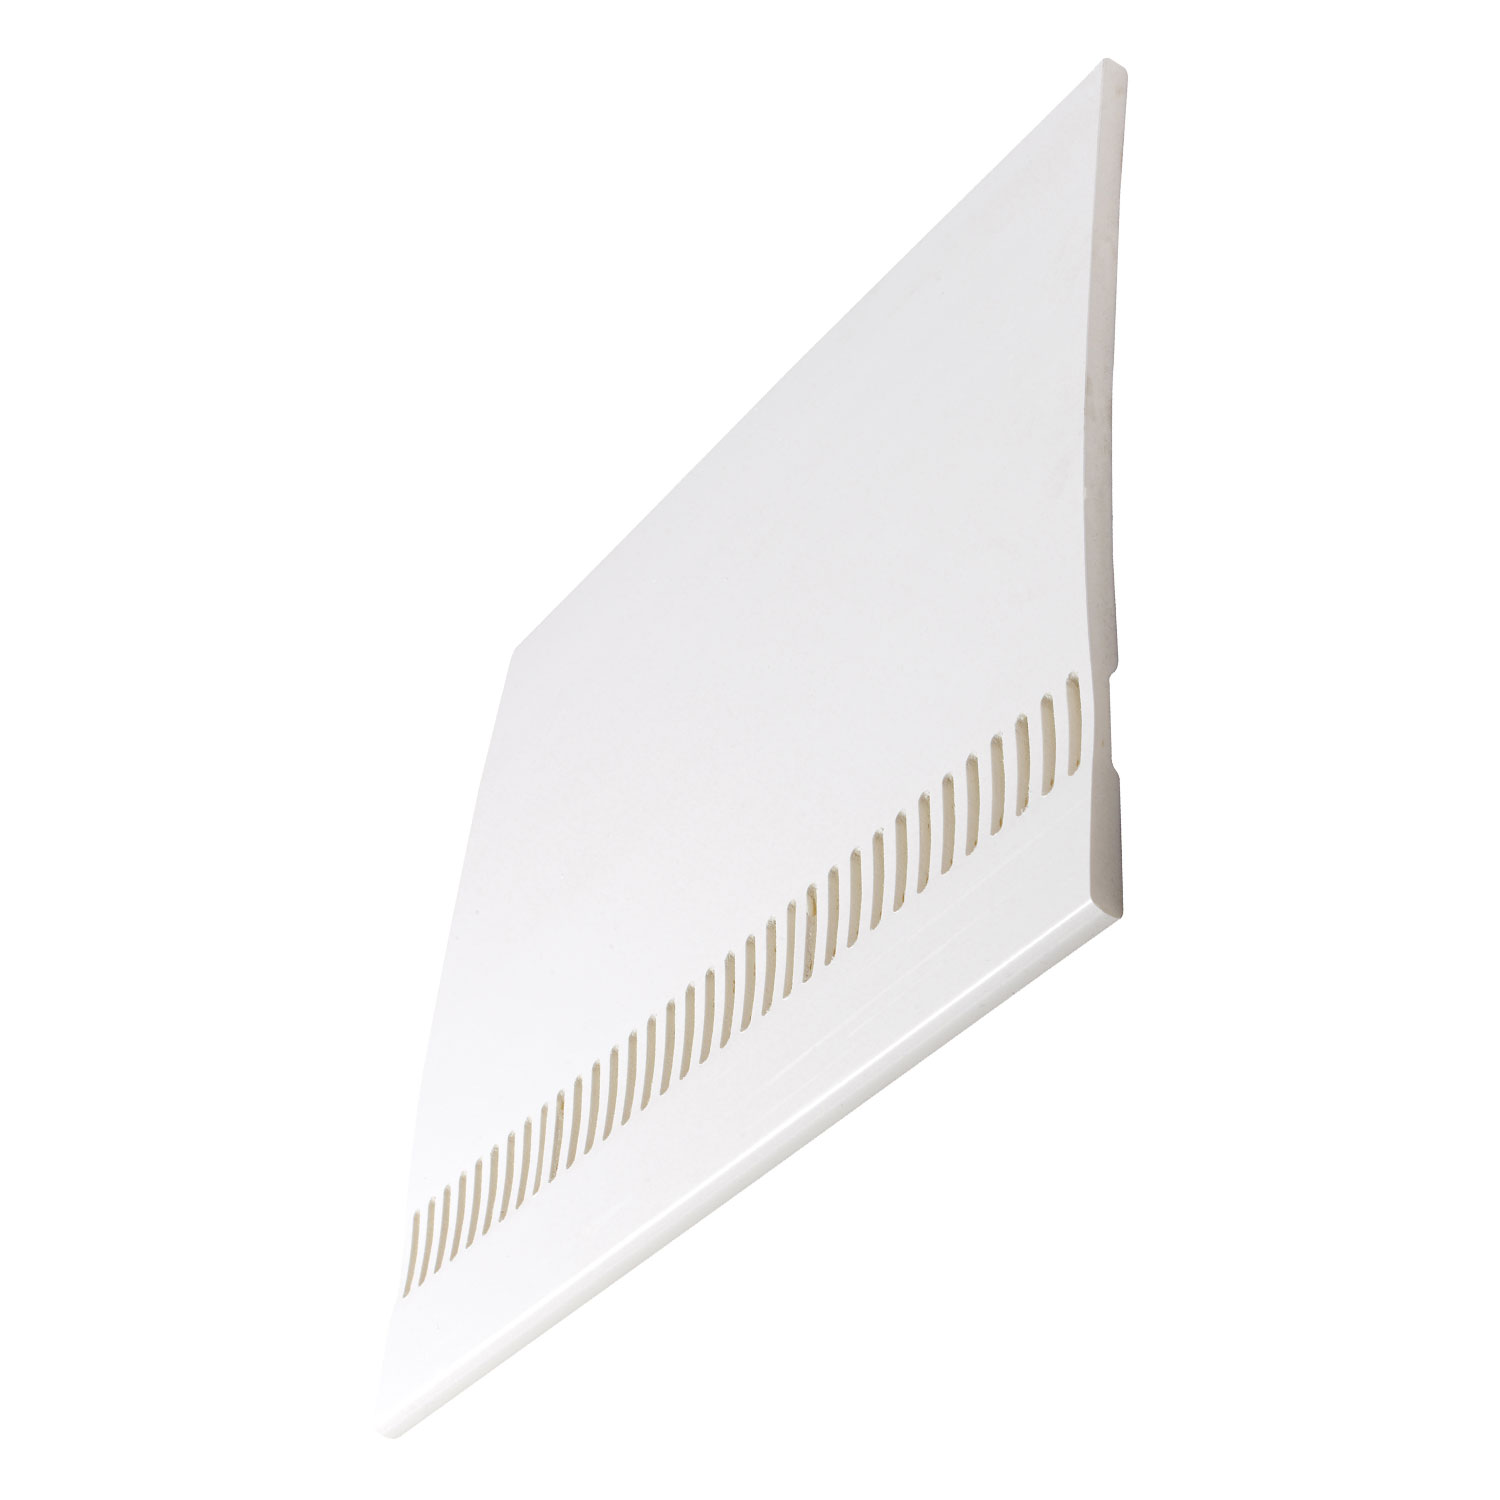 9mm White Vented Soffit Boards